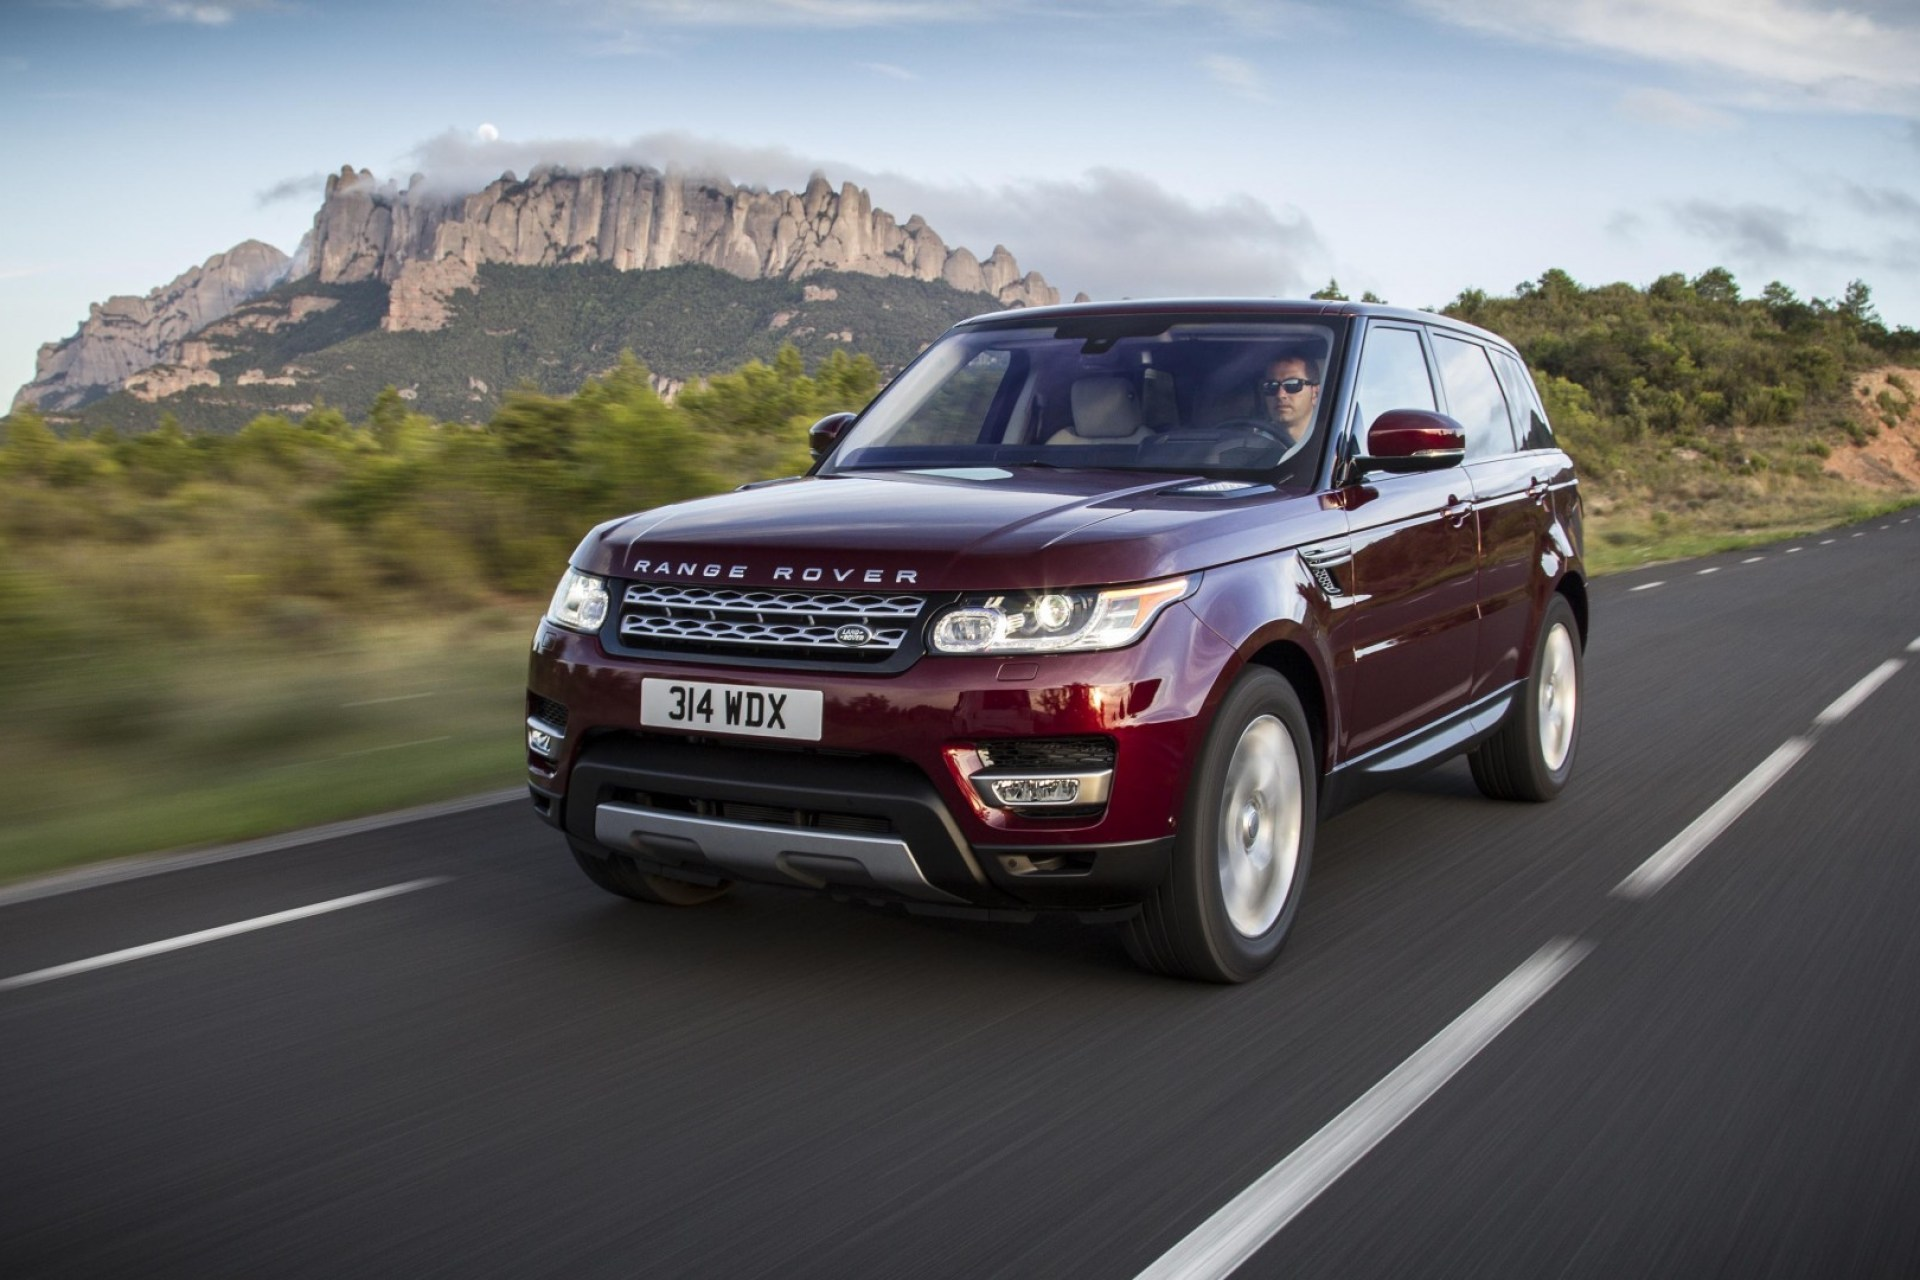 The updated Range Rover Sport is a whole lot of car – even with a